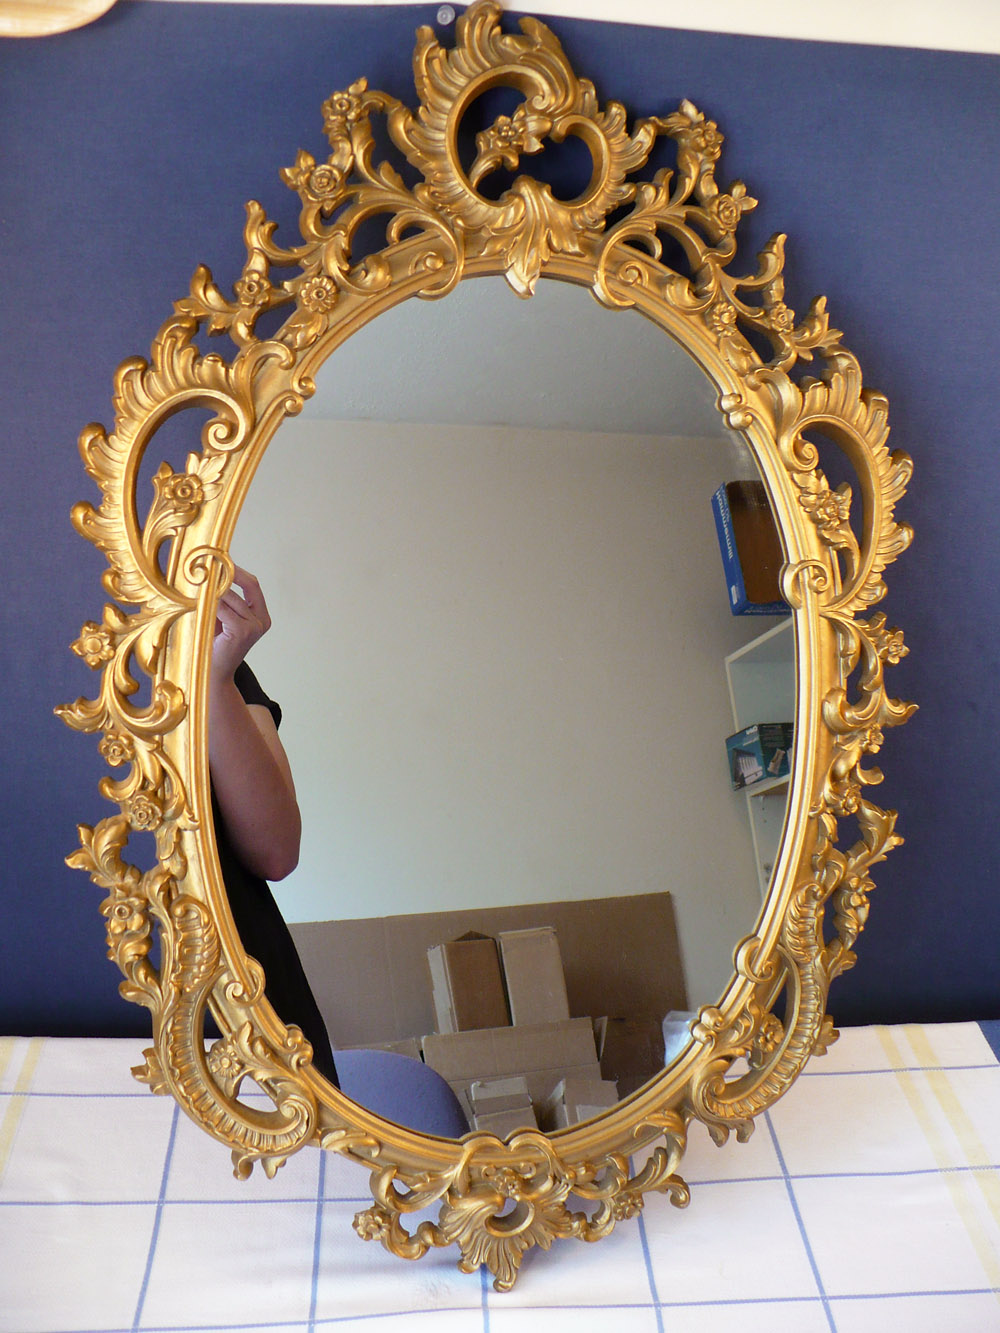 Vintage goodness 10 august 2011 vintage syroco gold wall mirror shabby ornate floral amipublicfo Gallery